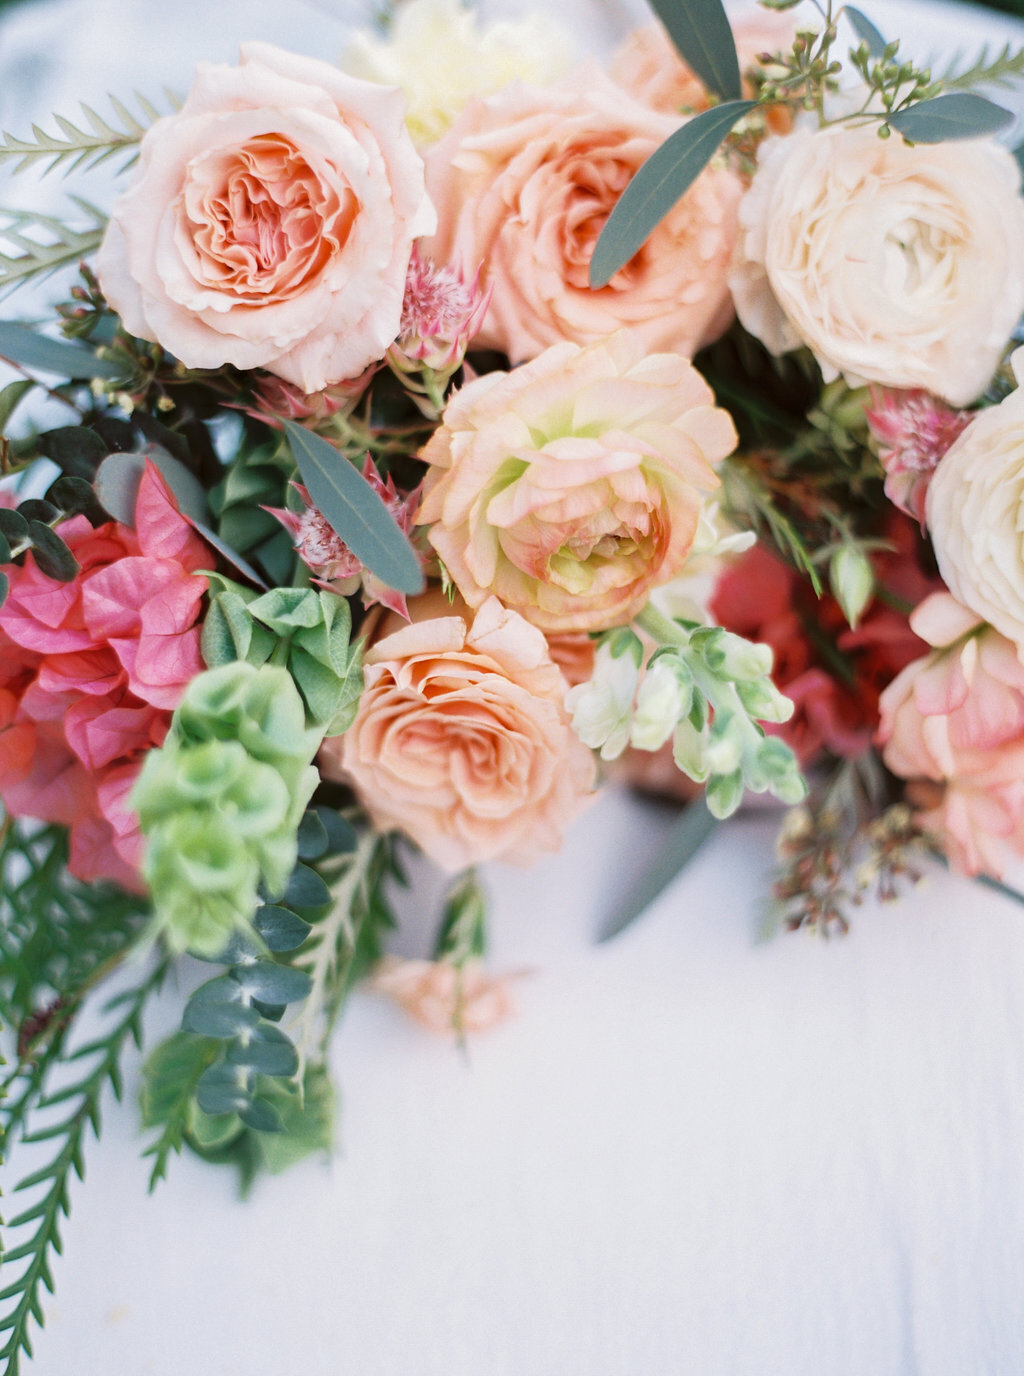 north-scottsdale-florist-wedding-flowers-roses